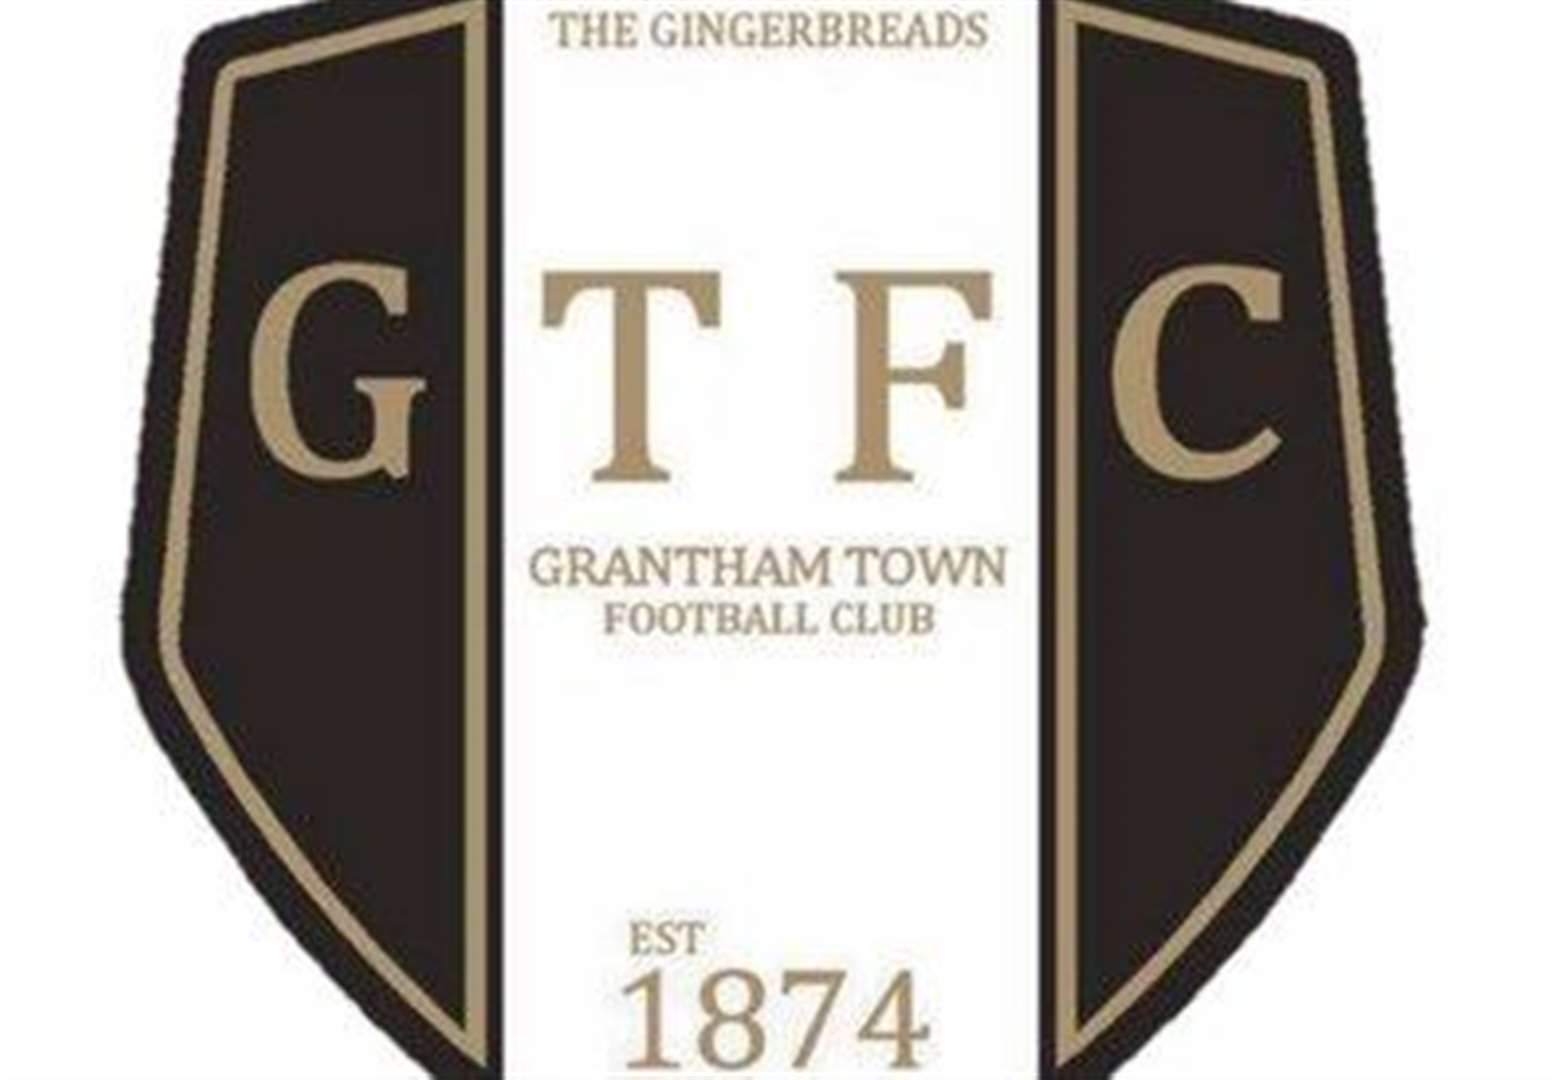 Gingerbreads' supporters club lottery results